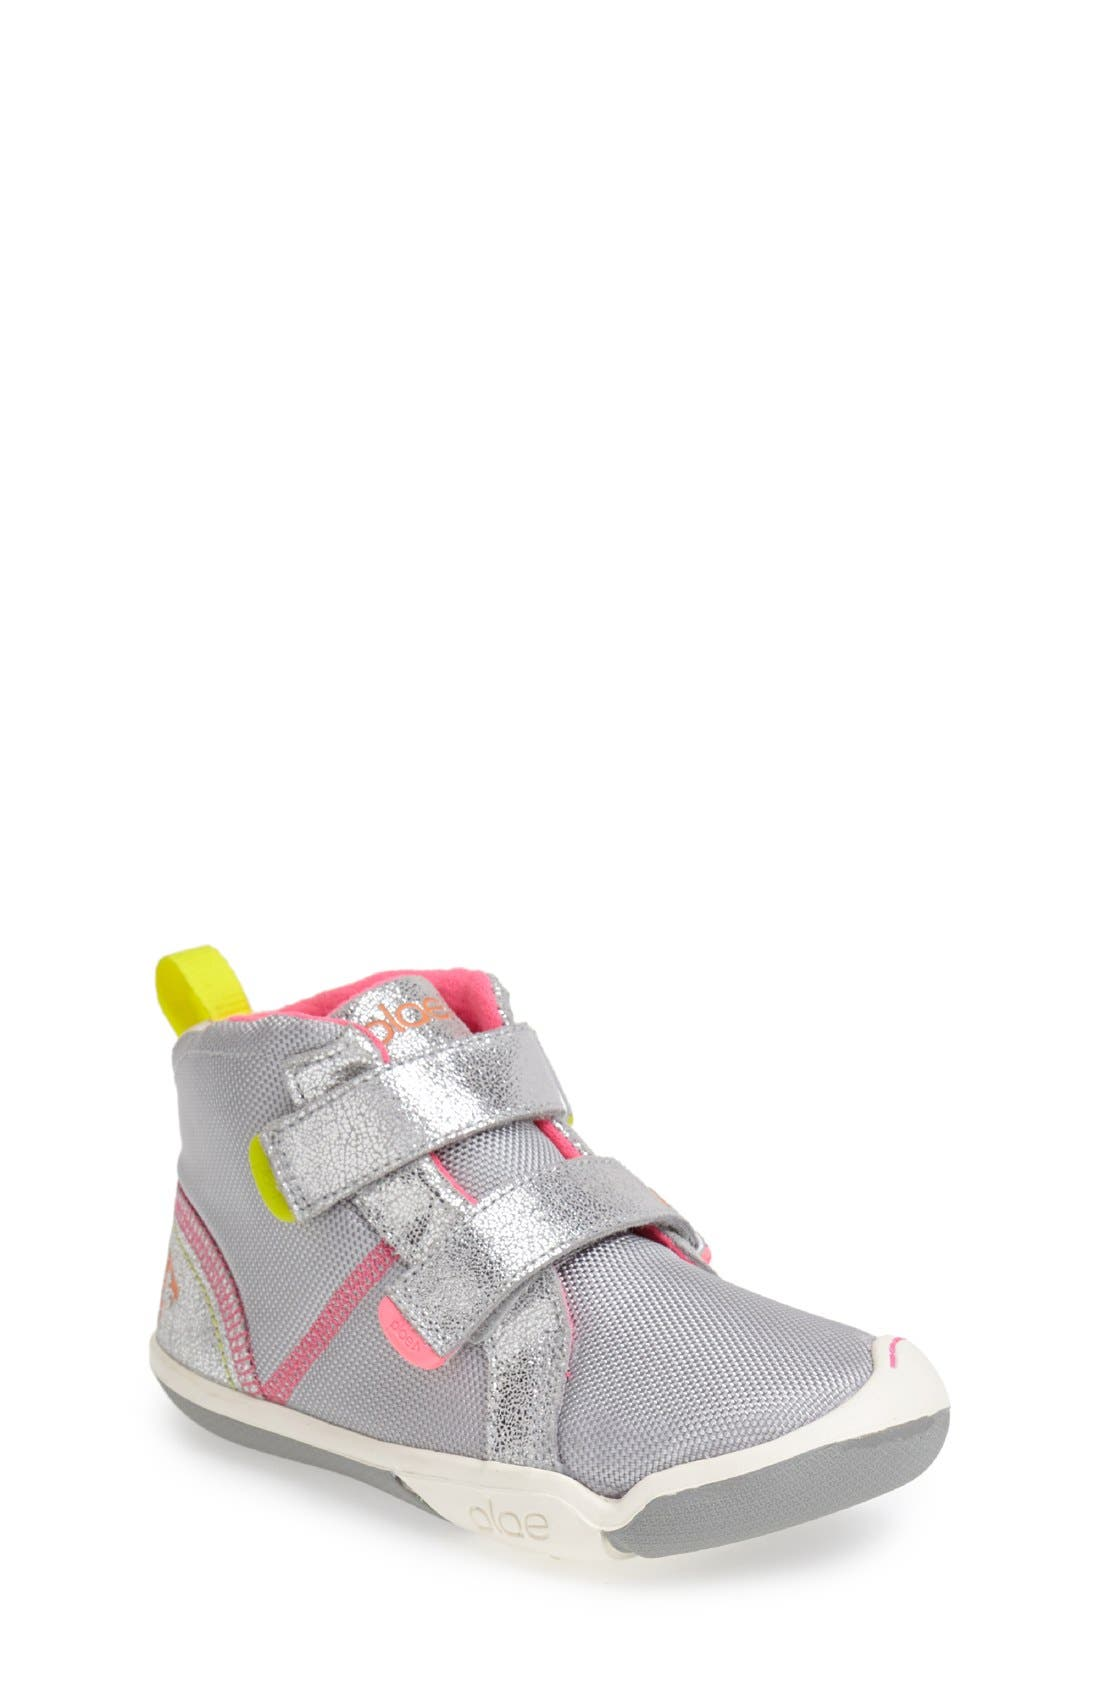 Main Image - PLAE 'Max' Customizable High Top Sneaker (Toddler & Little Kid)